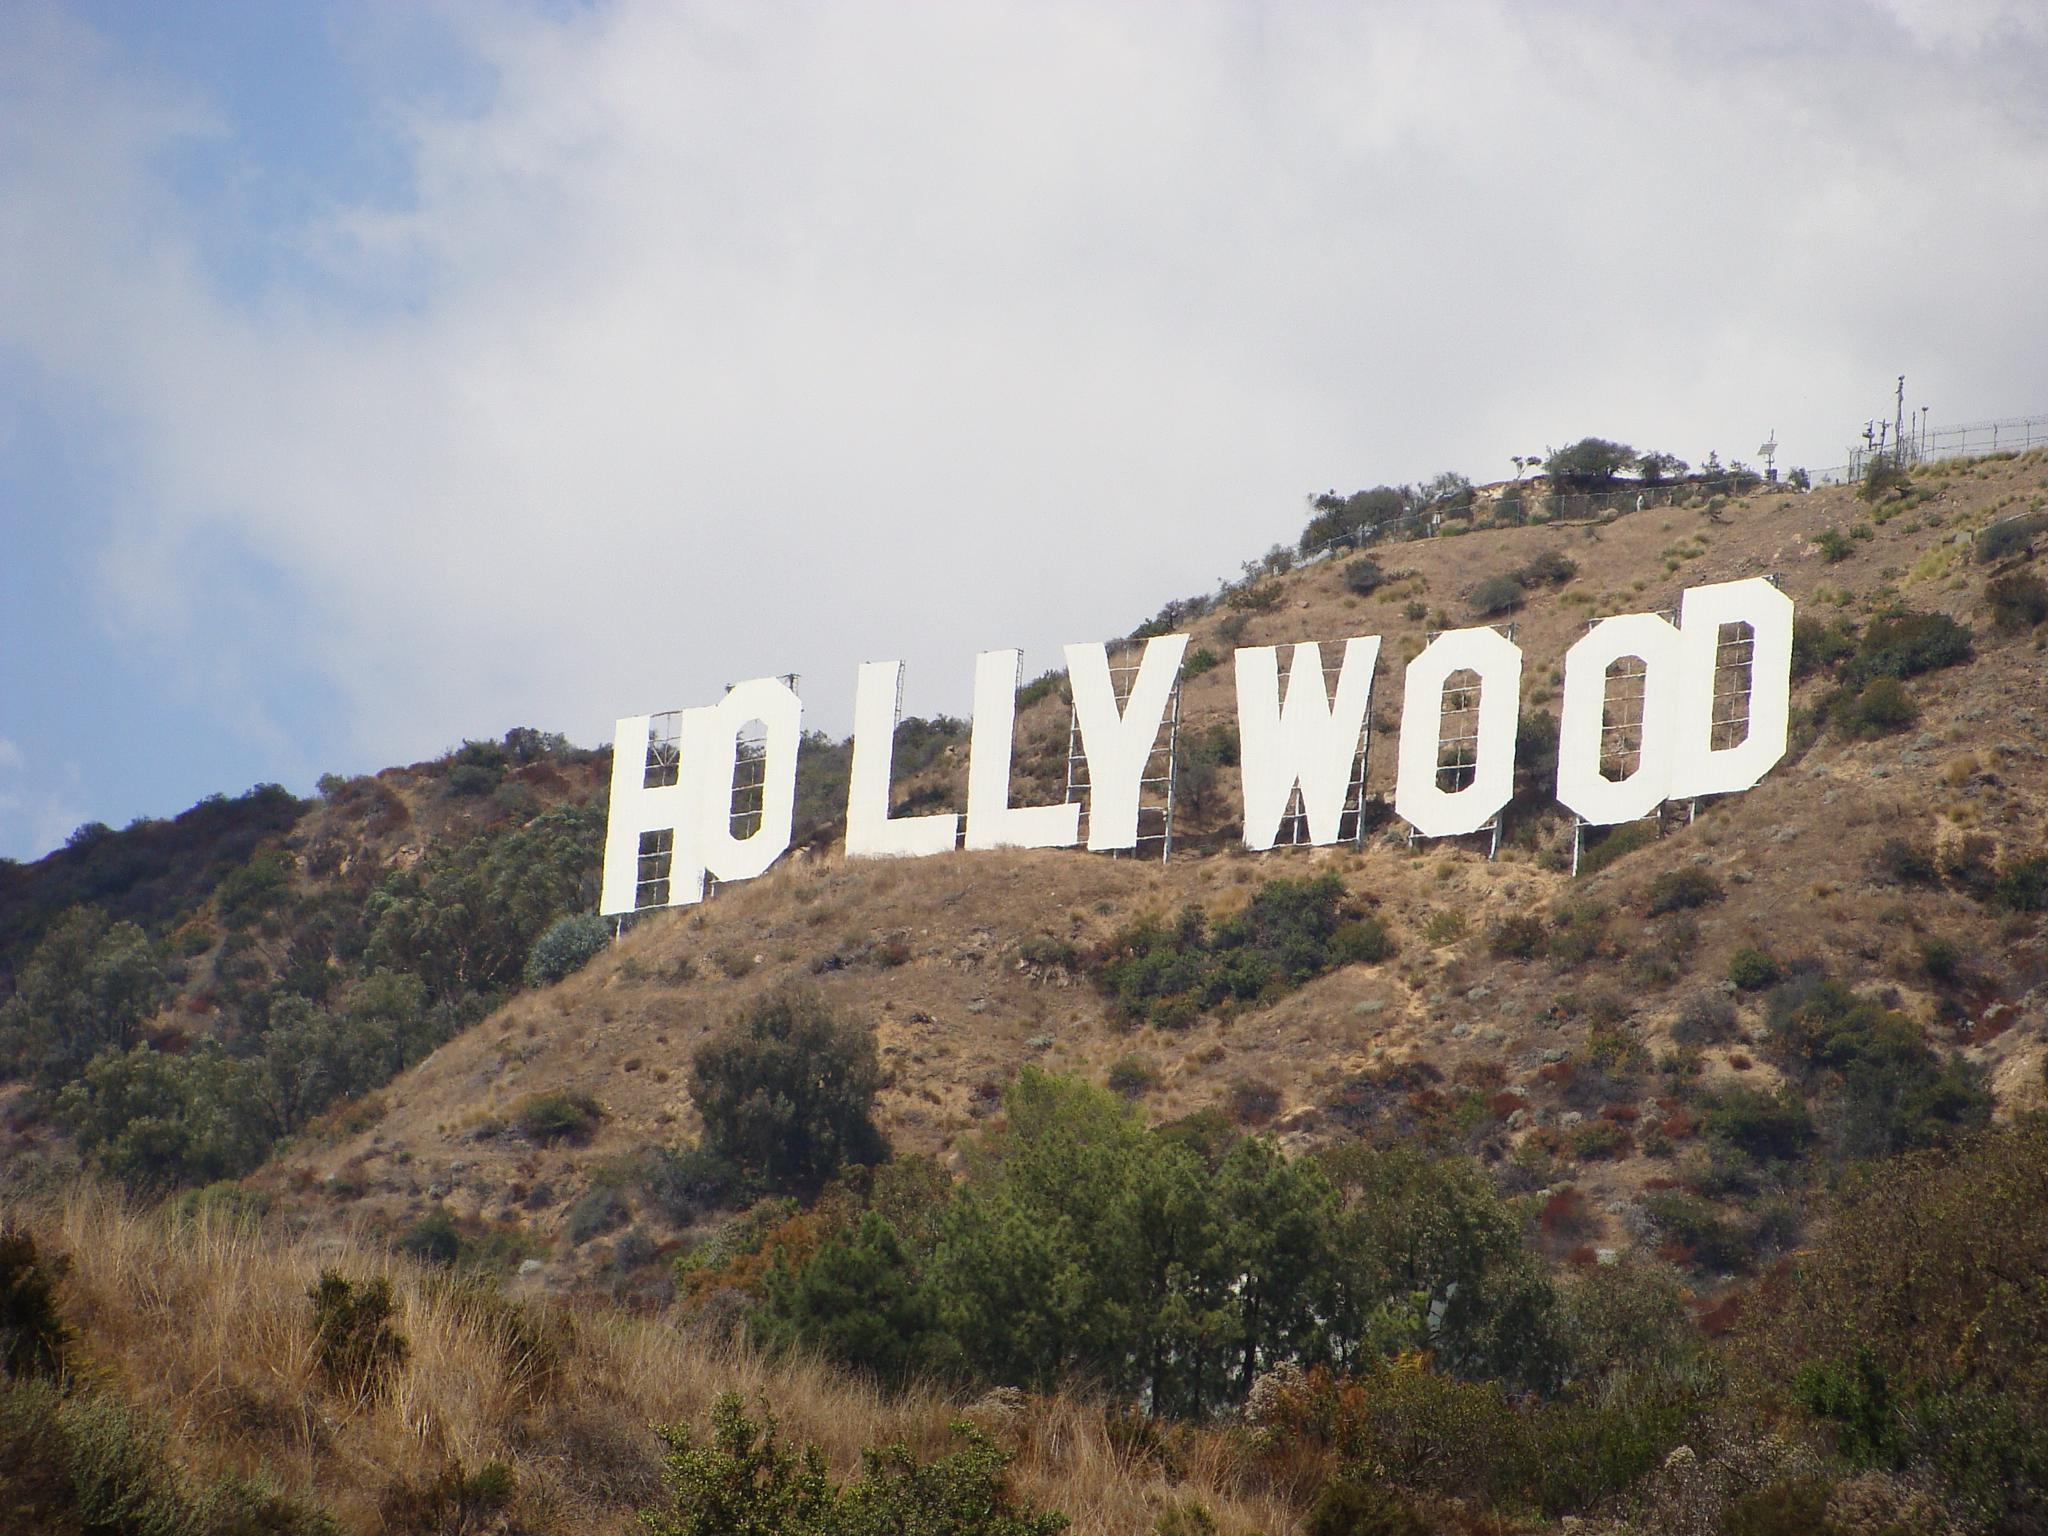 So This is Hollywood? by Brandon W. Ross